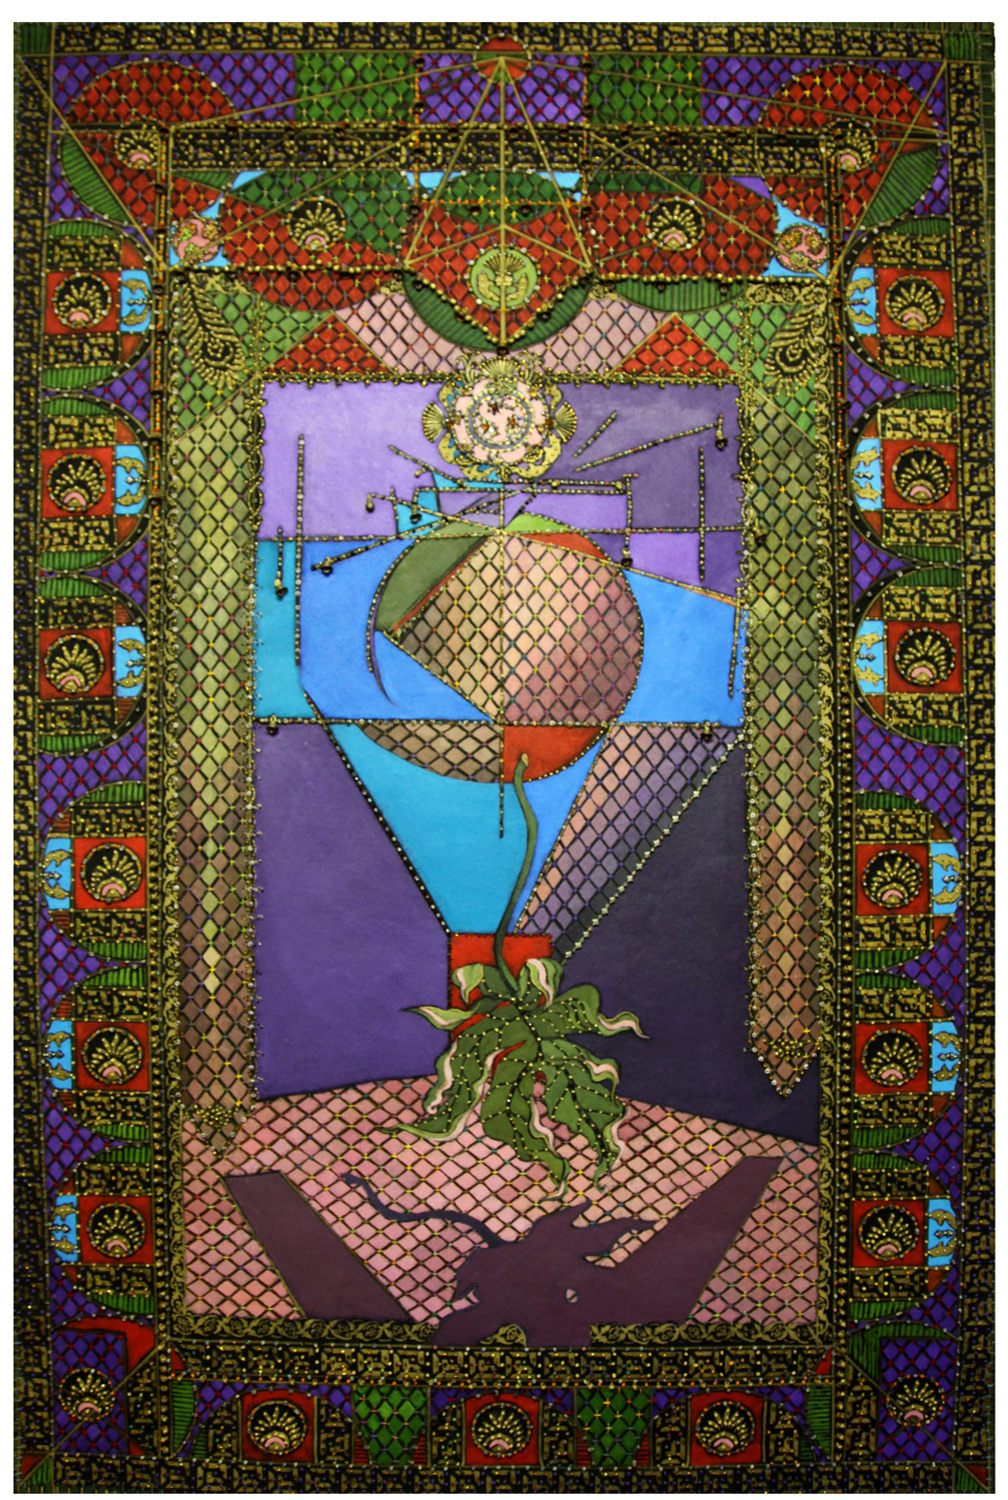 balance-78x49-inches-canvas-paint-embroidery-beading-by-suzanne-klotz-1500px.jpg